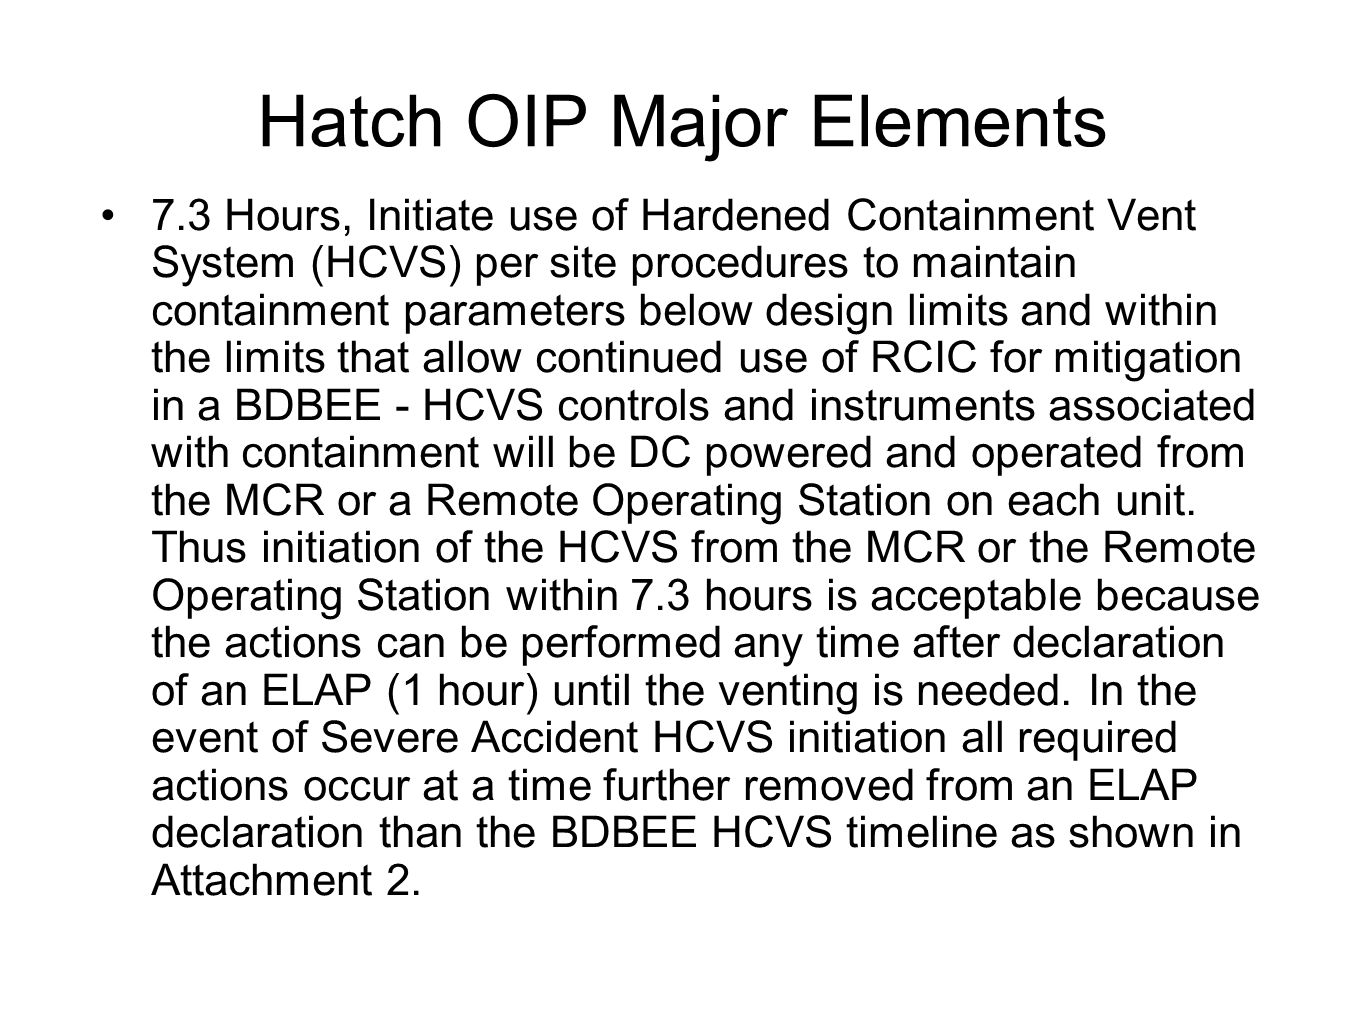 Hatch OIP Major Elements 7.3 Hours, Initiate use of Hardened Containment Vent System (HCVS) per site procedures to maintain containment parameters bel